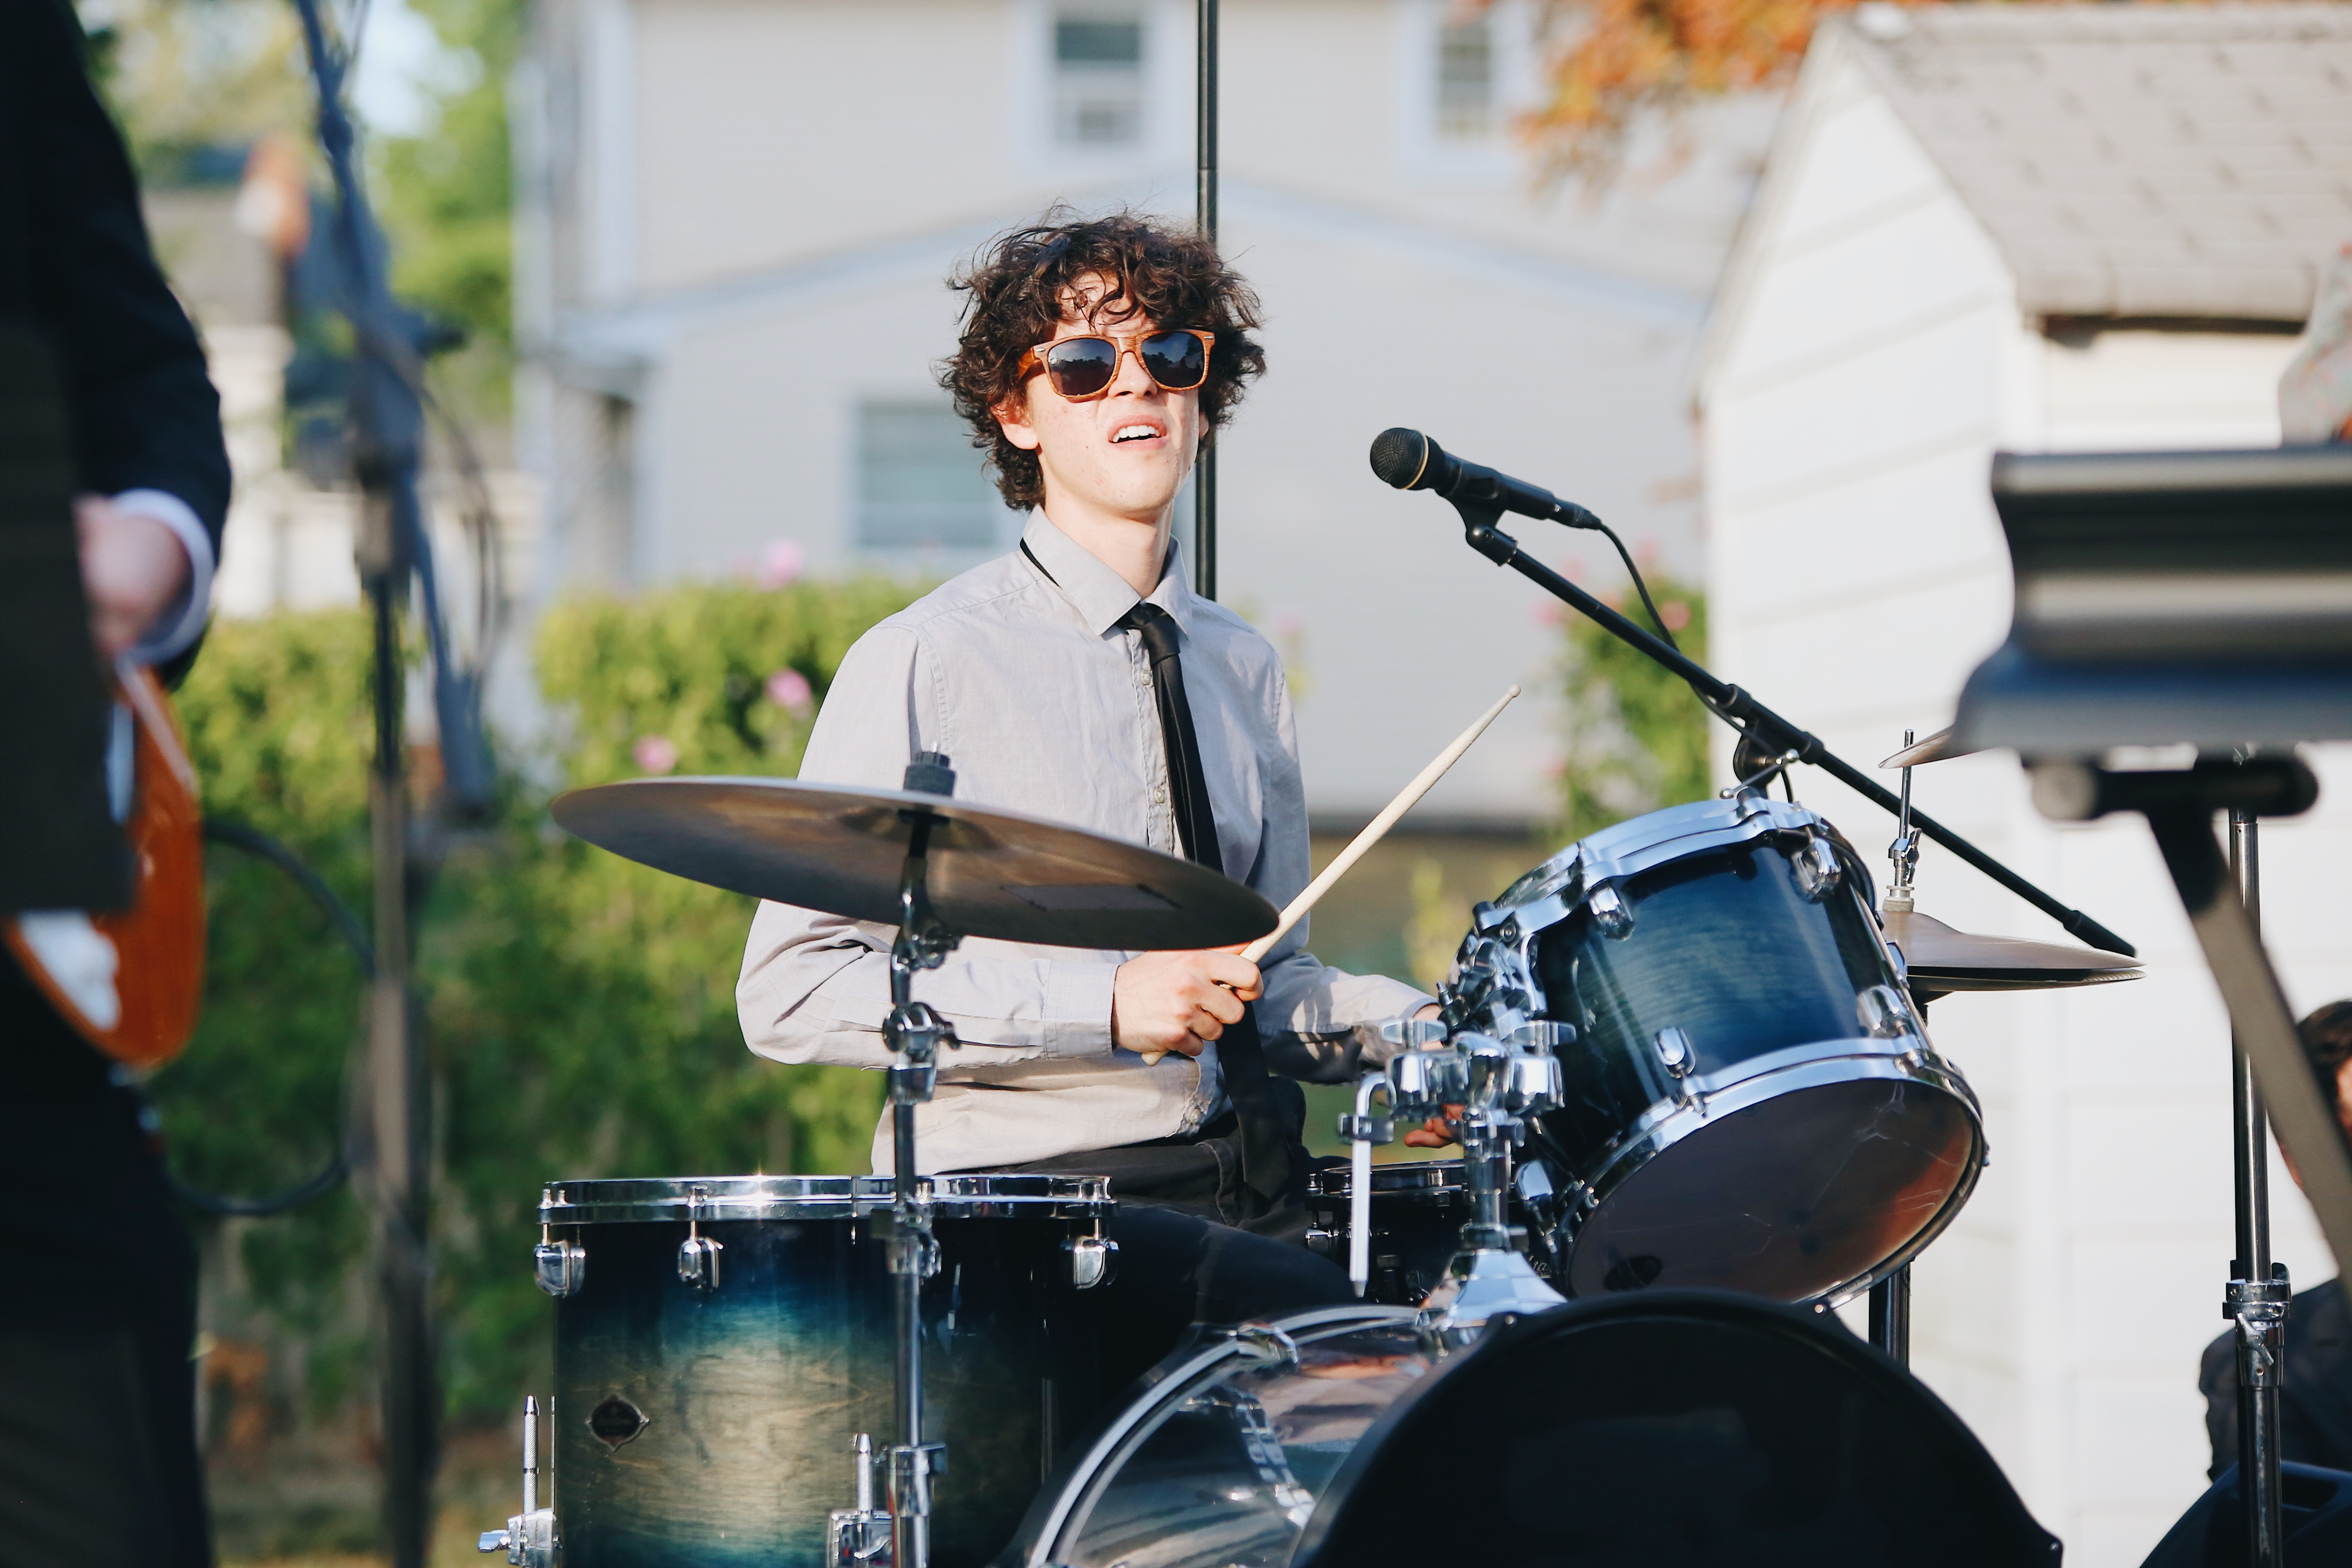 Teenager playing the drums to symbolise drum lessons at a music school.